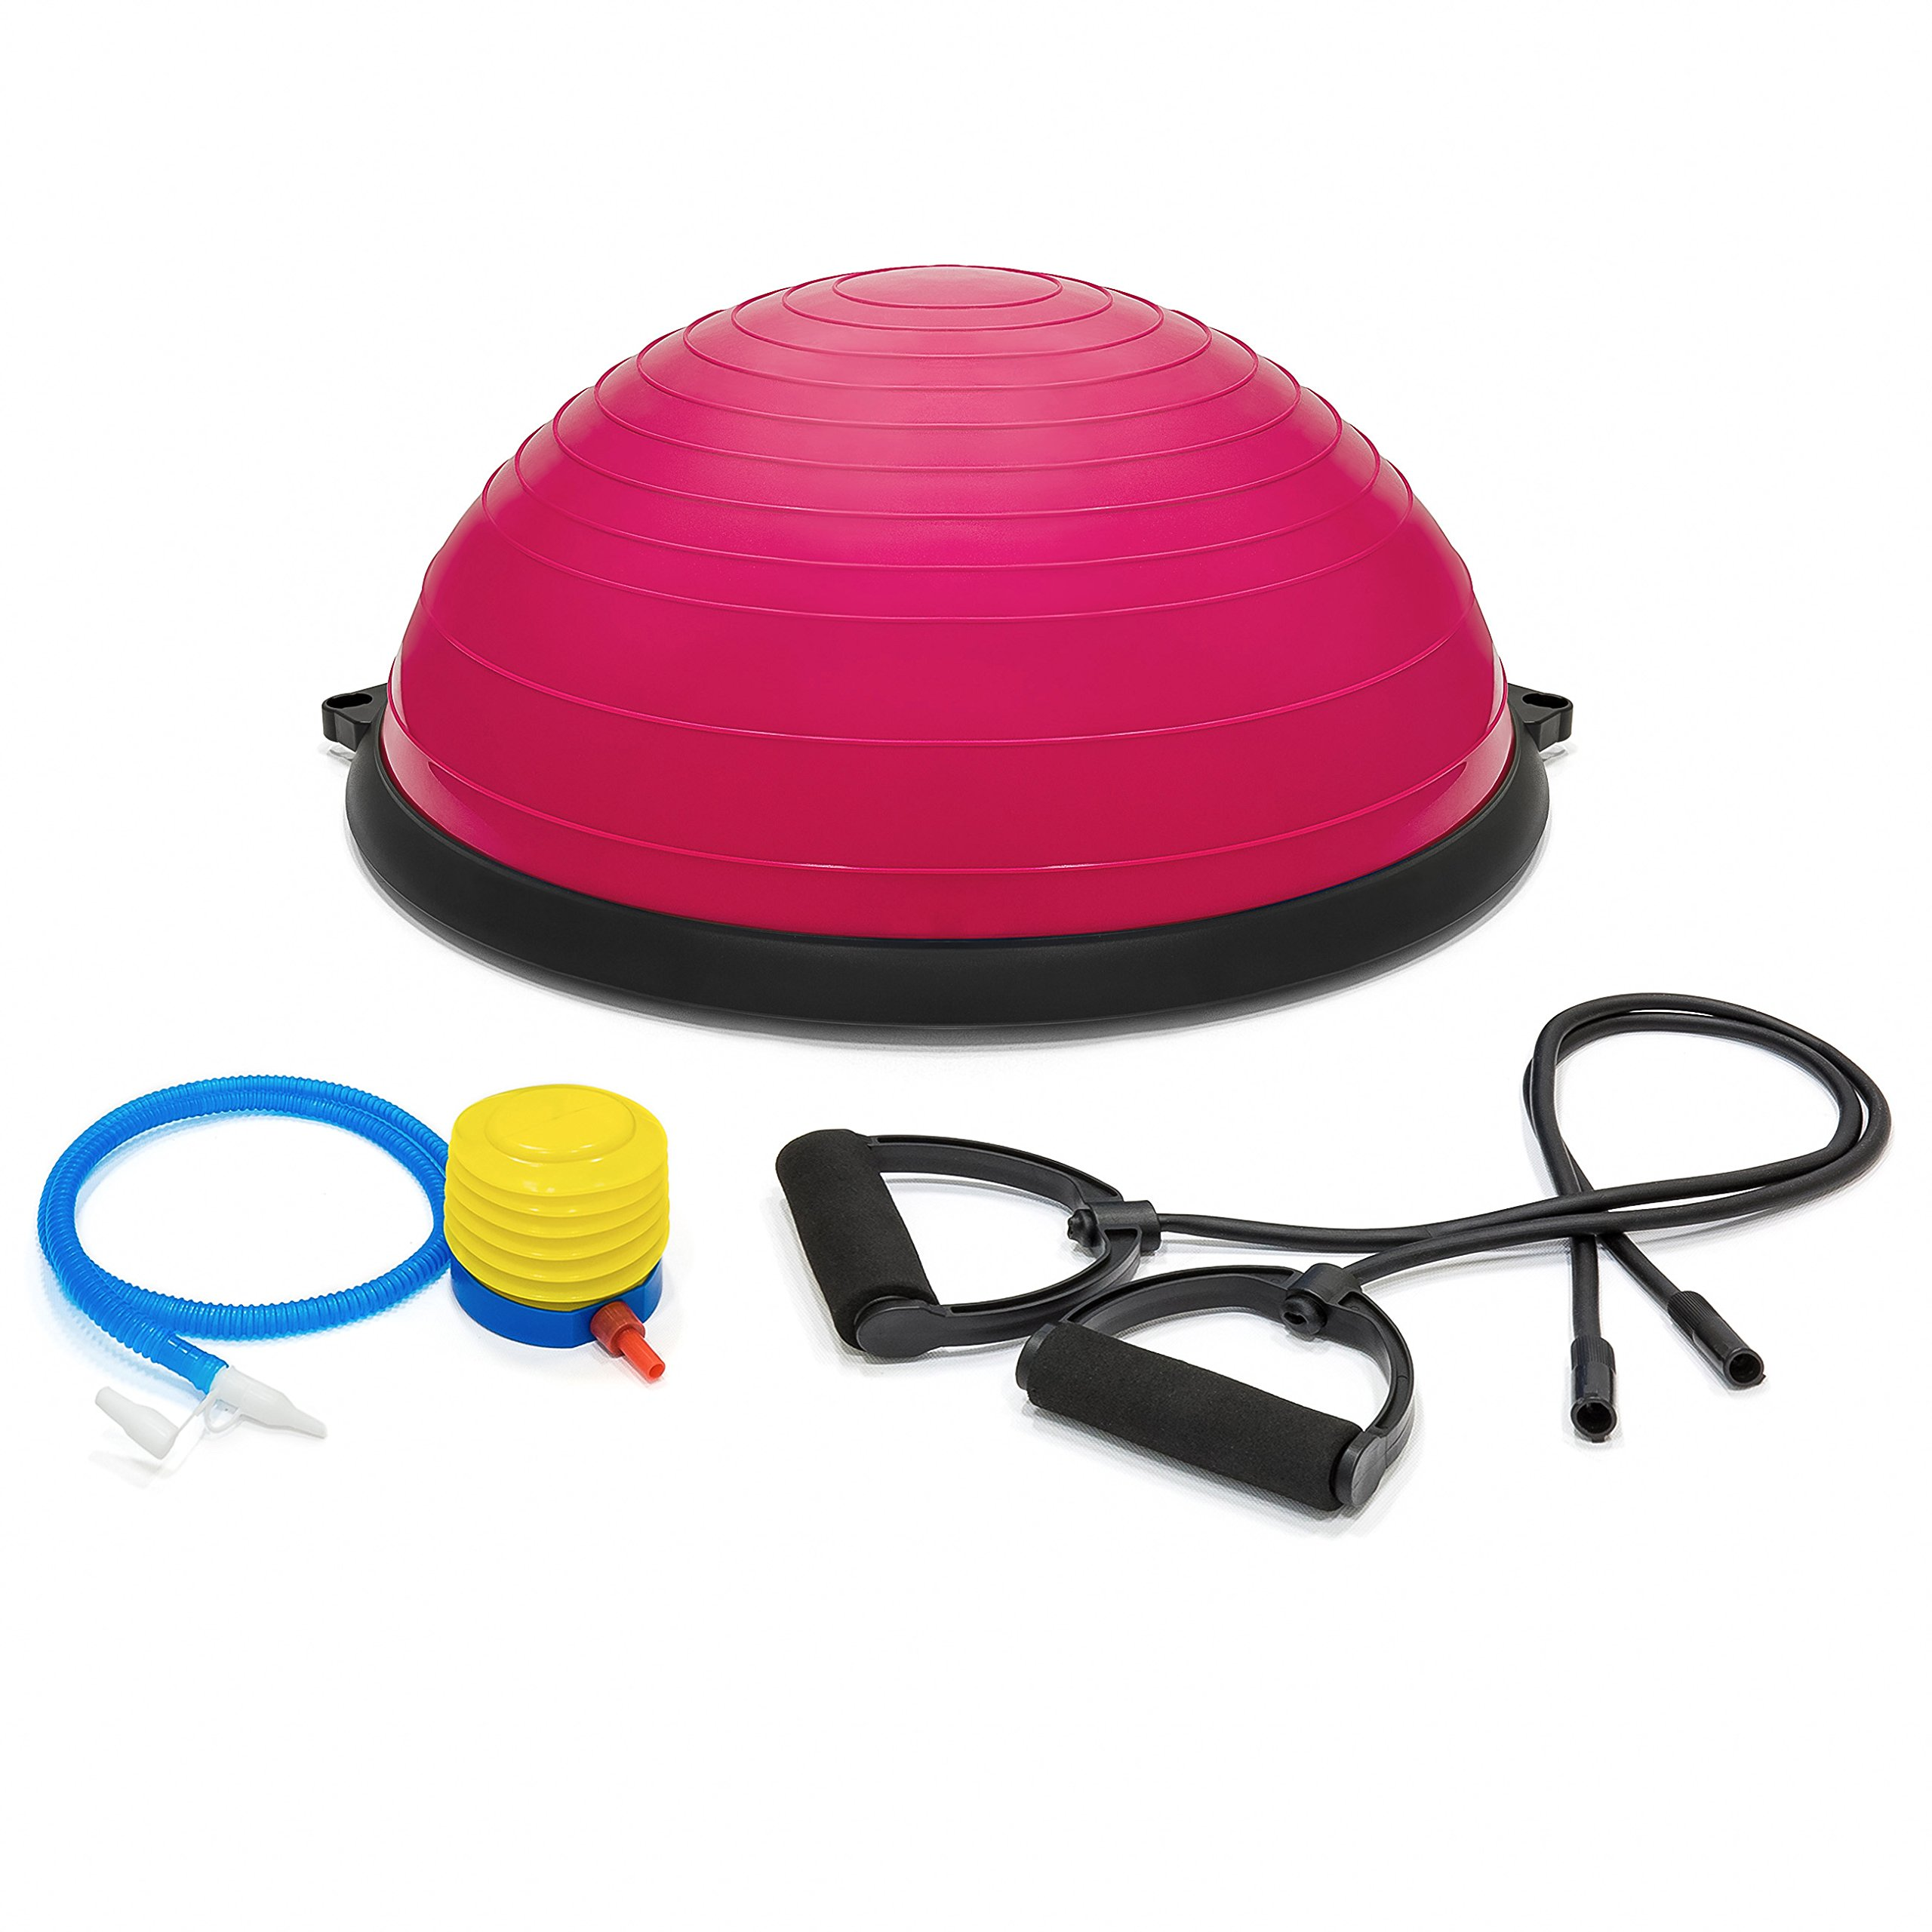 Best Choice Products Yoga Balance Exercise Ball w/ 2 Resistance Bands & Pump - Pink by Best Choice Products